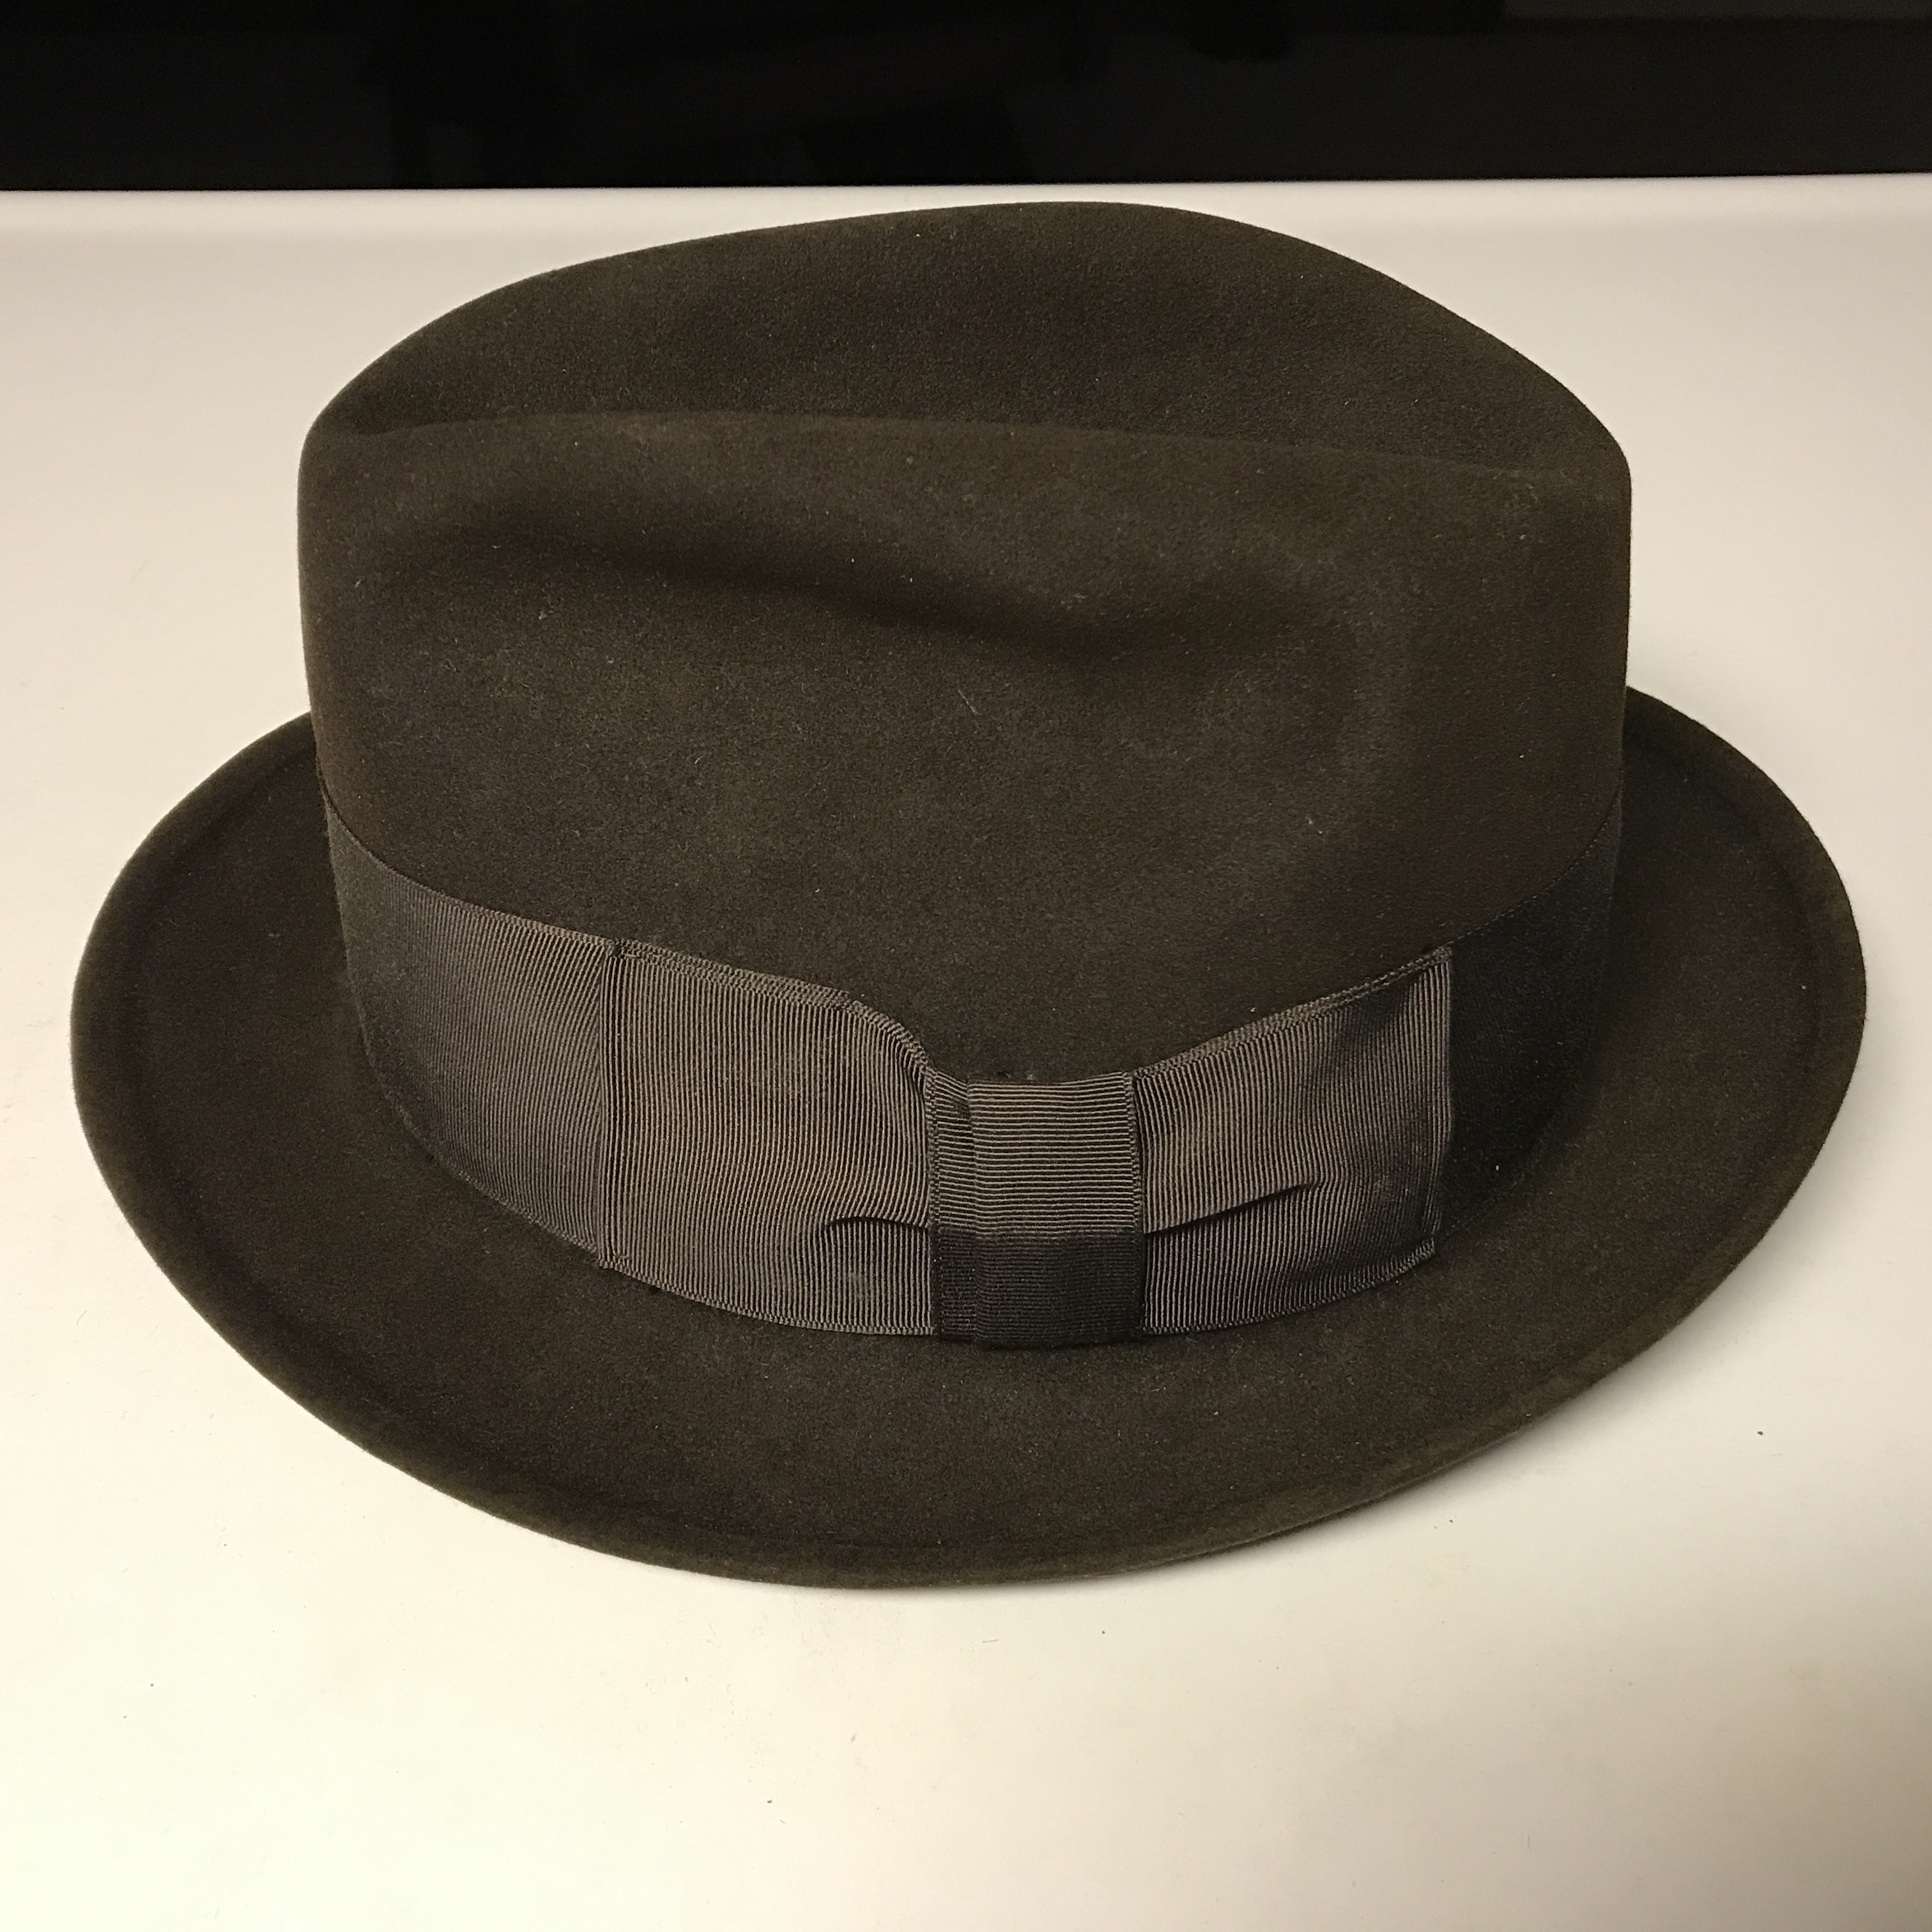 12cef578a8bfb Also I have a Stetson hat box. So looking for advice and also the date of  the hat and box. Do you think the box and hat belong together also.